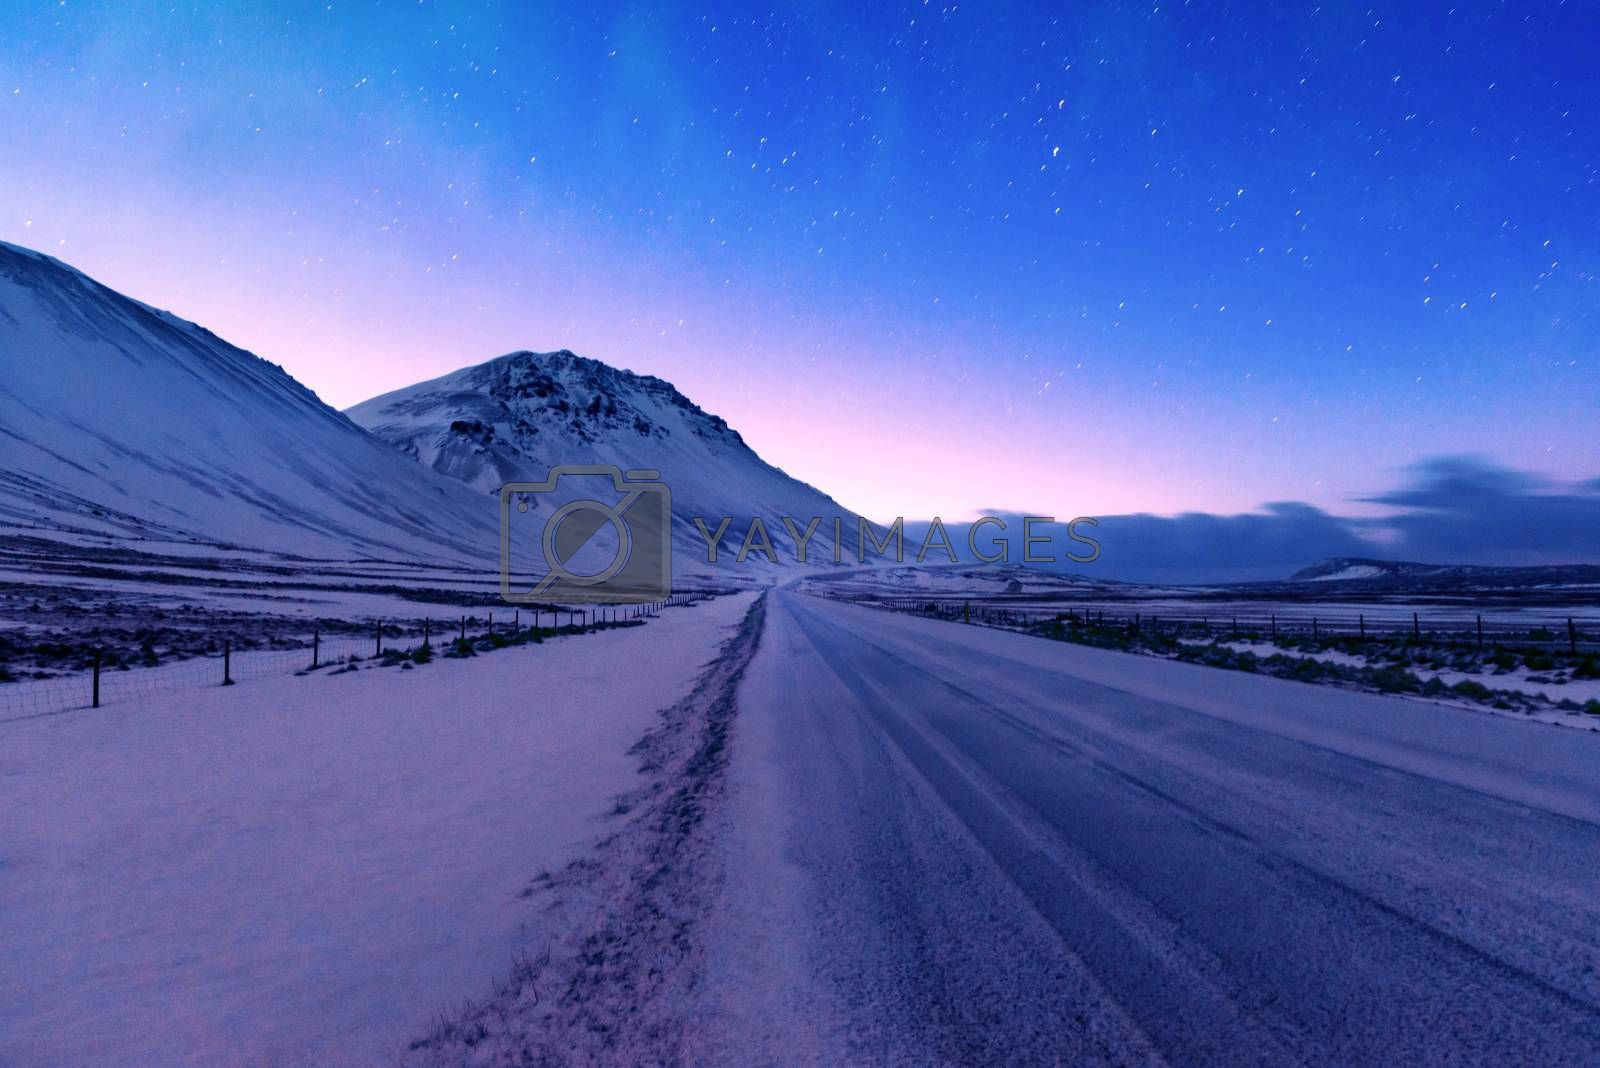 Iceland road trip, the highway along mountains covered with snow, amazing Icelandic landscape, picturesque wintertime view, the night shifts to a sunrise scene